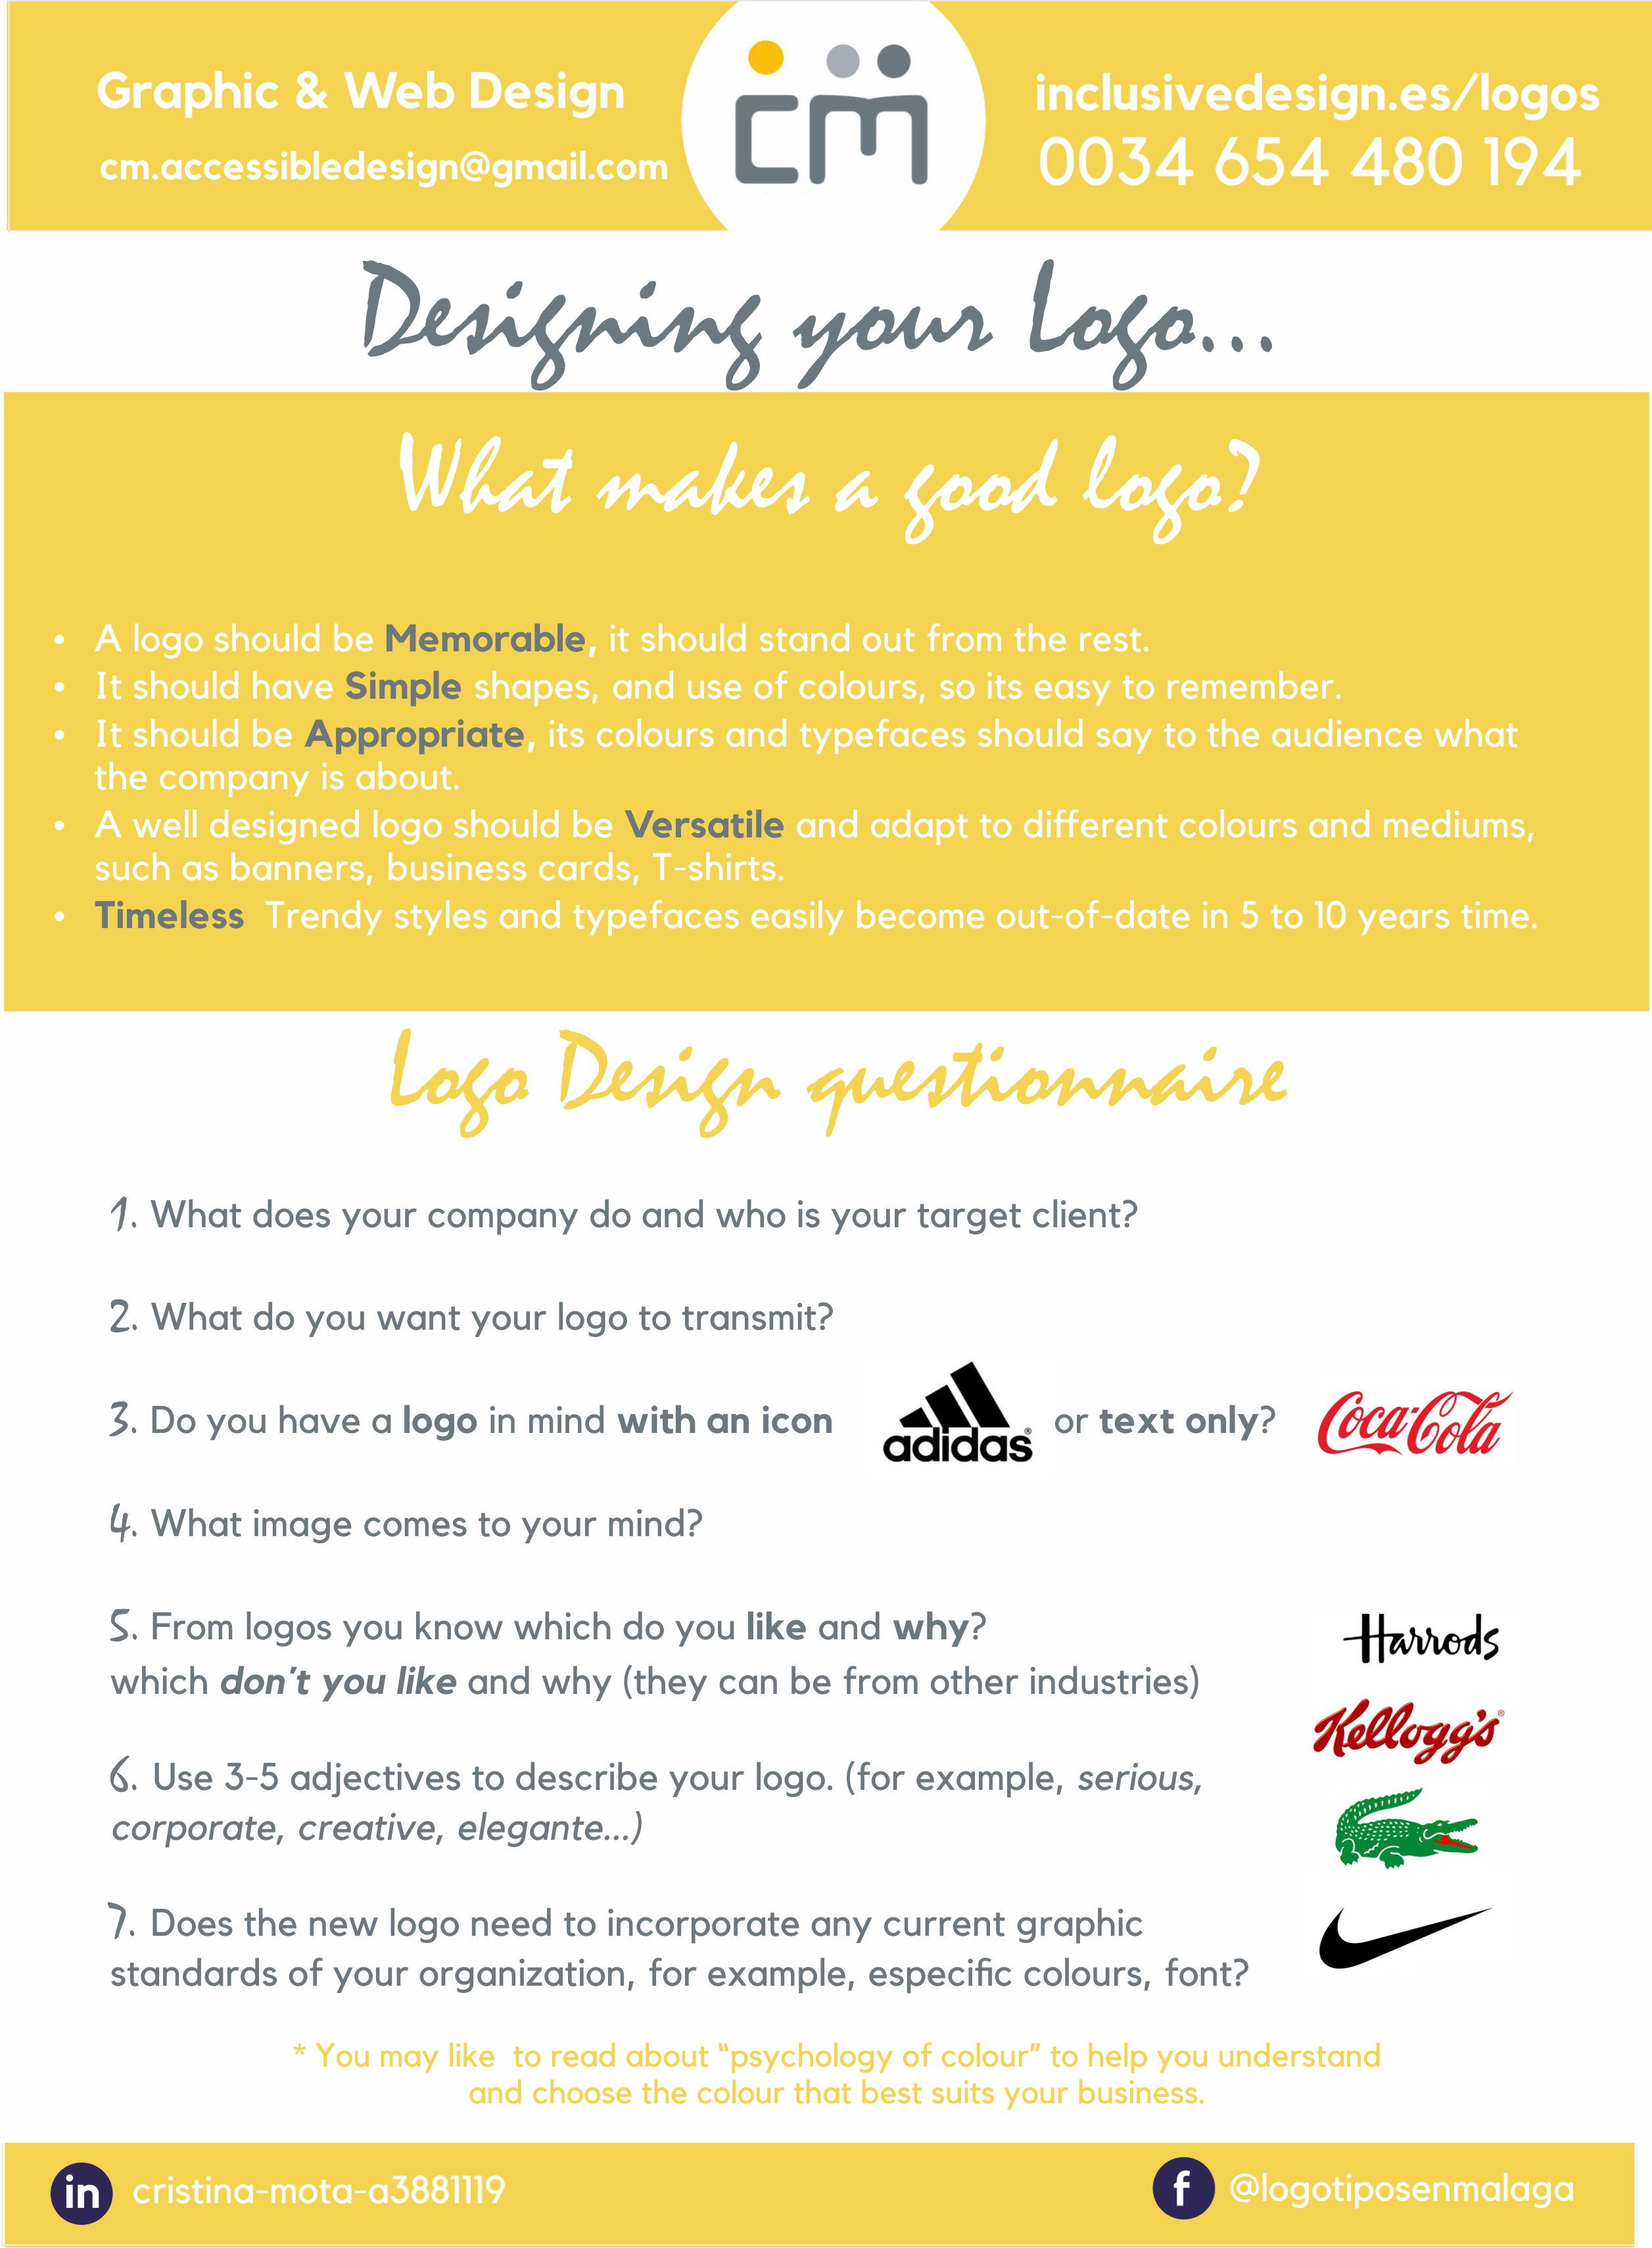 checklist of main things to look for in a logo design. Simple, Legibility, Timeless,